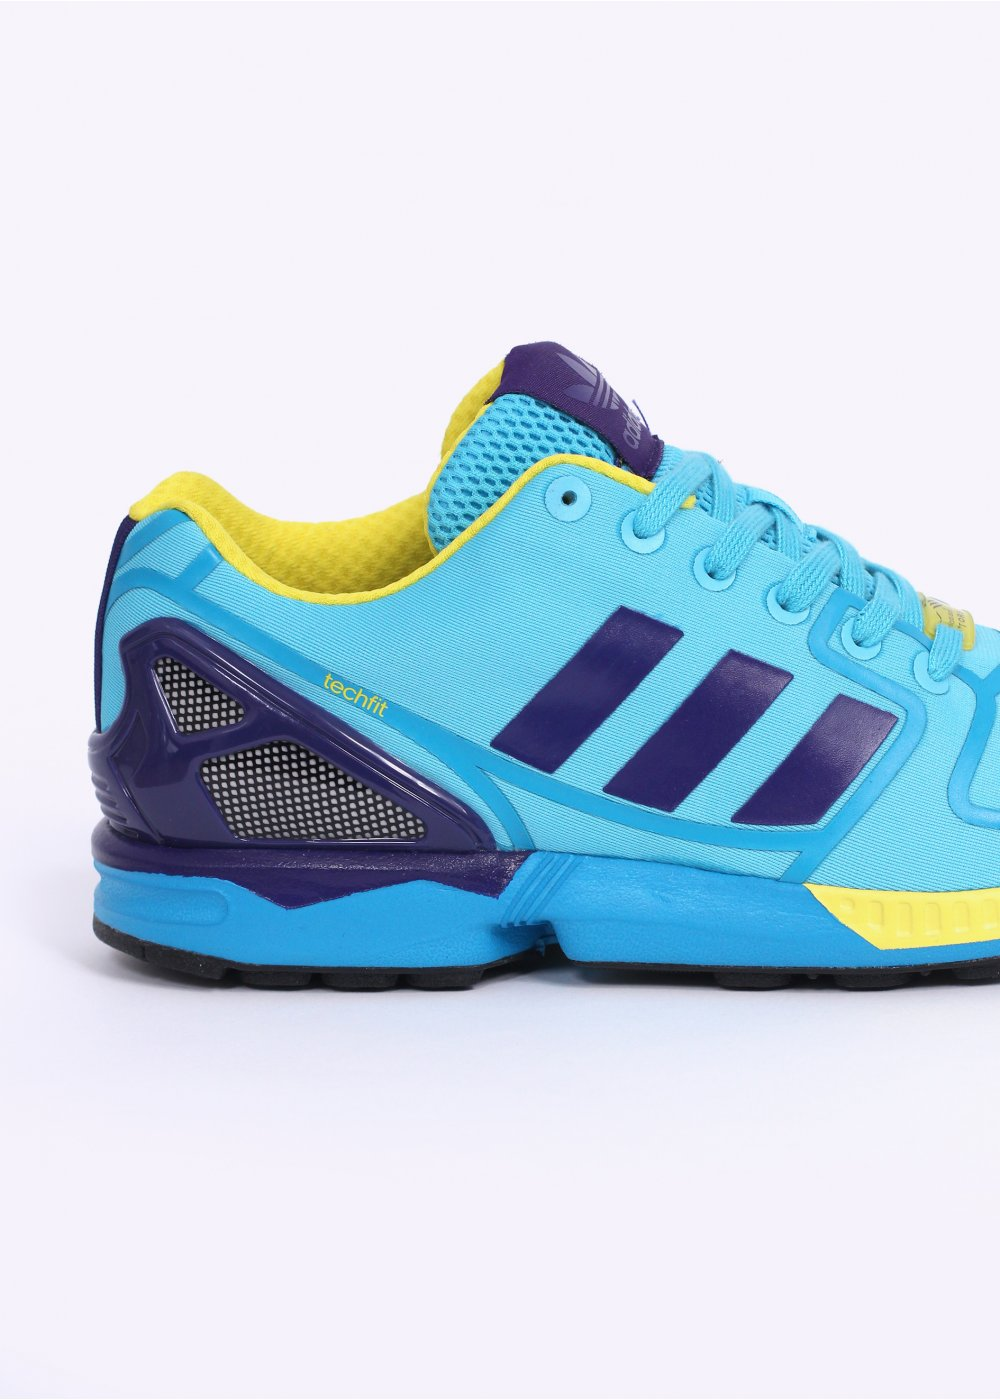 adidas originals zx flux techfit trainers cyan. Black Bedroom Furniture Sets. Home Design Ideas